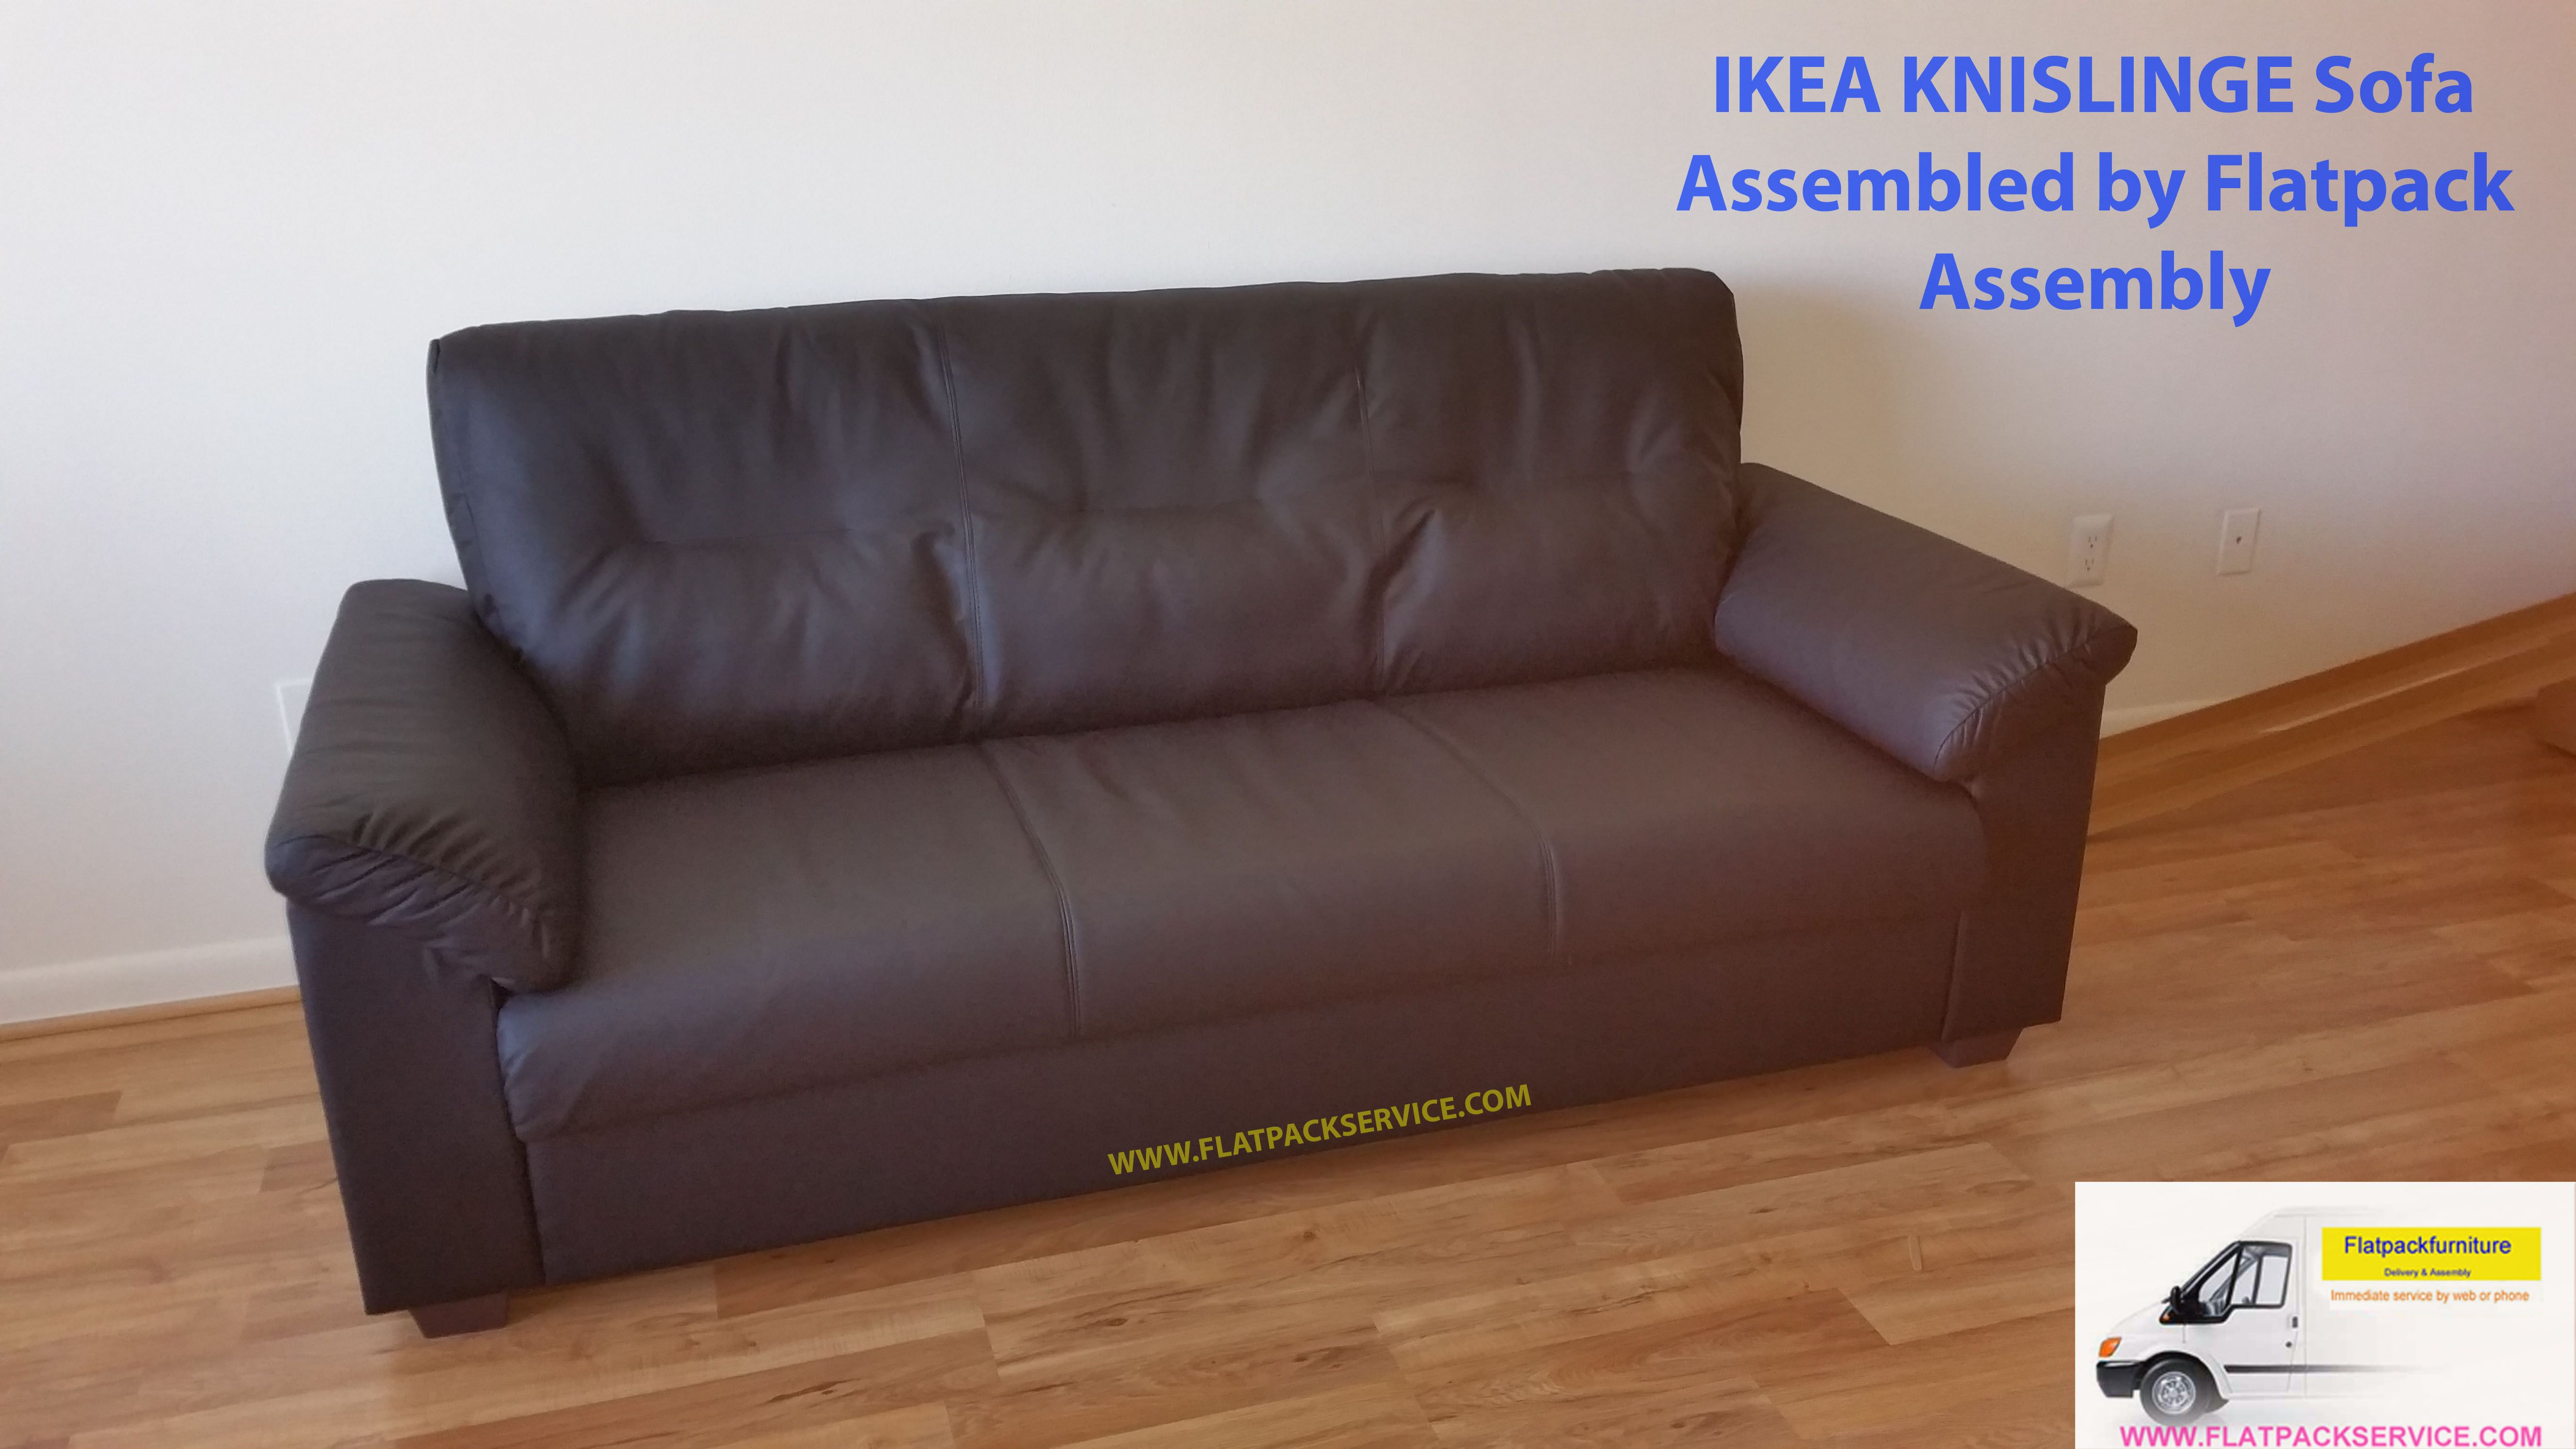 Ikea Knislinge Sofa Article Number 802 789 23 Assembled By